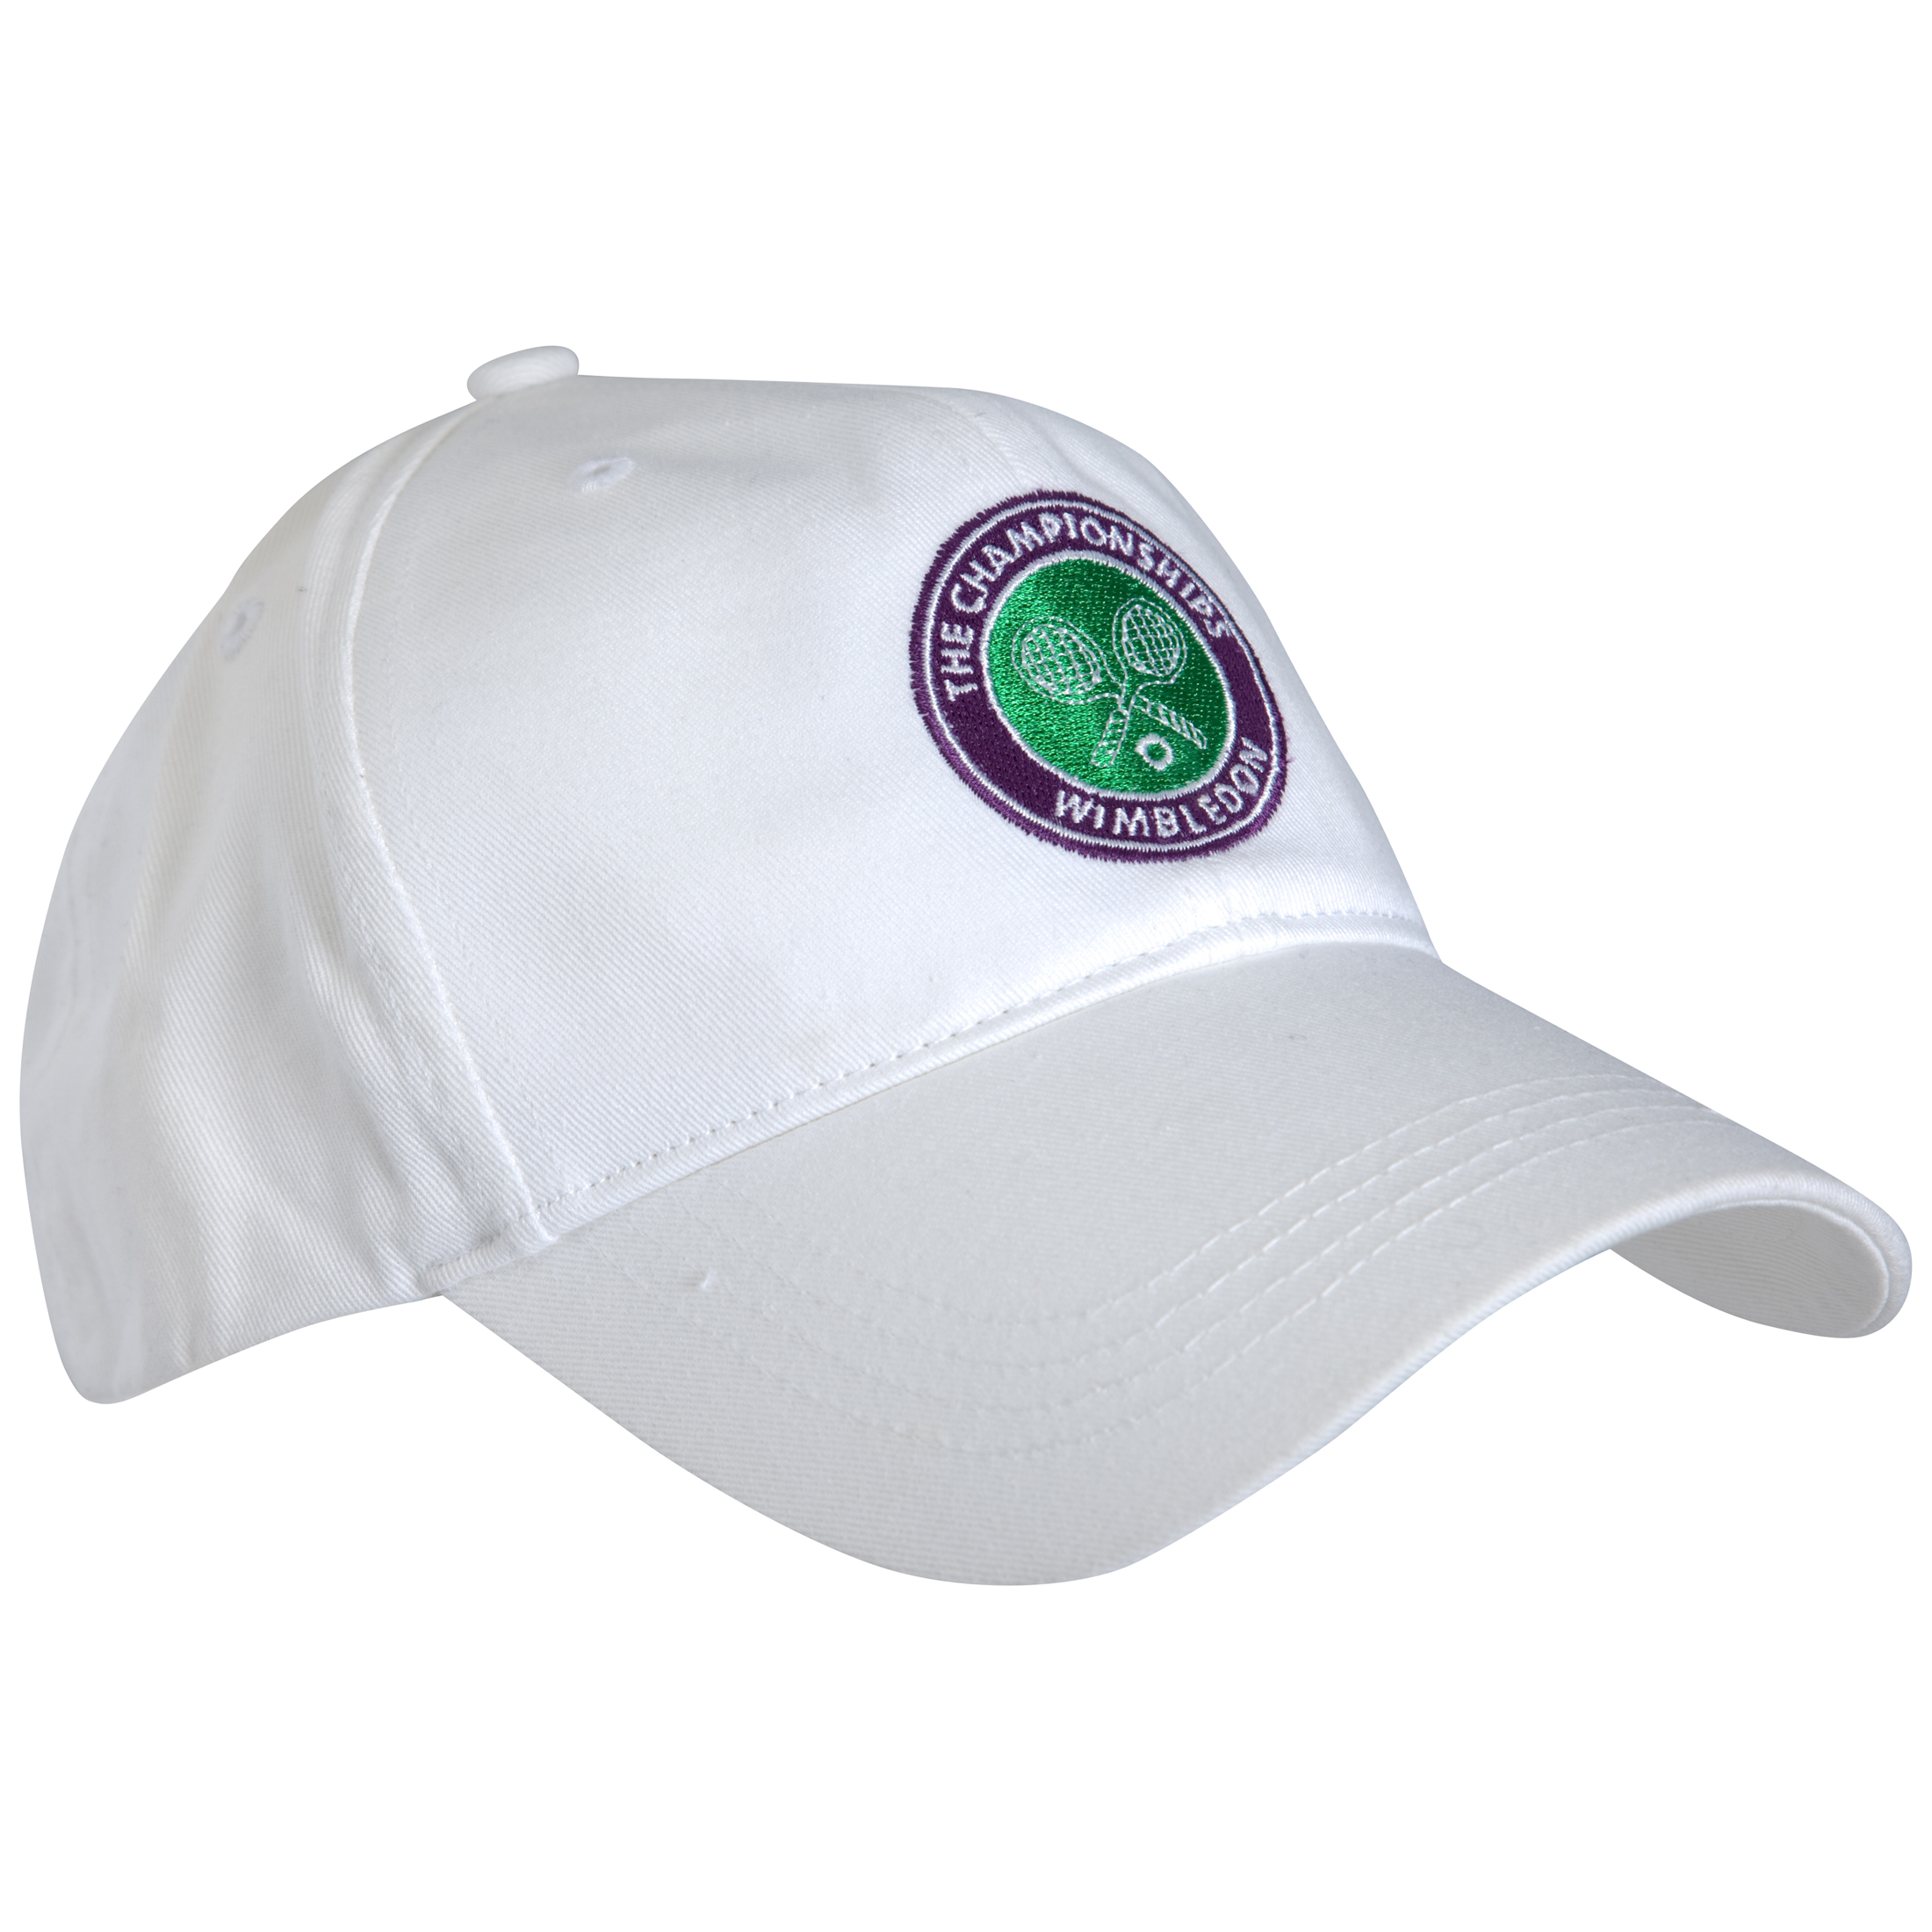 Wimbledon Crossed Rackets Cap - White - Kids